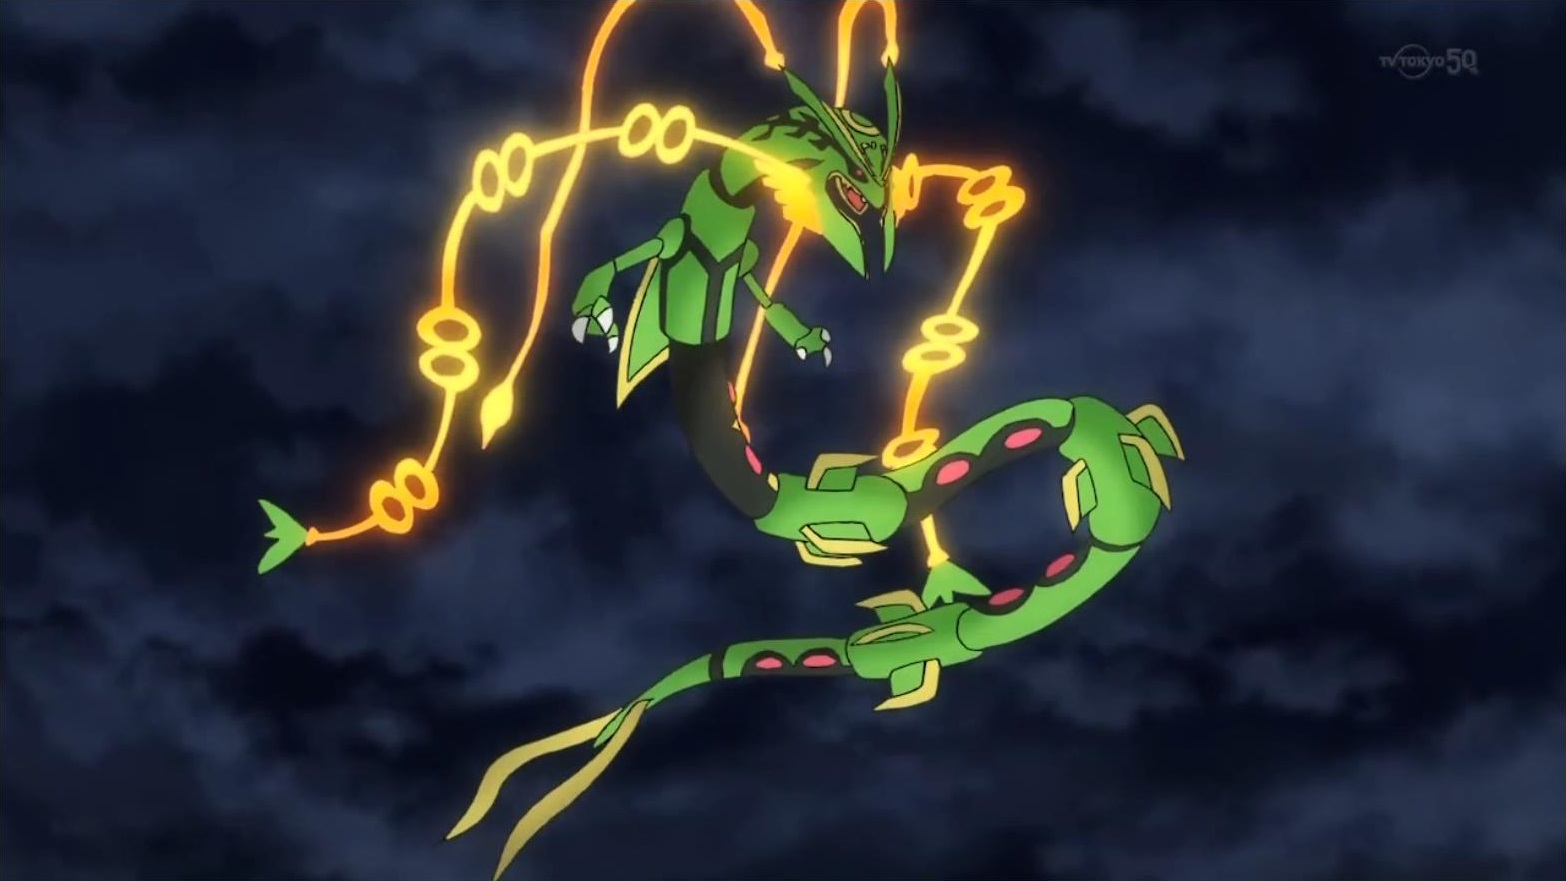 rayquaza pok233mon wiki fandom powered by wikia